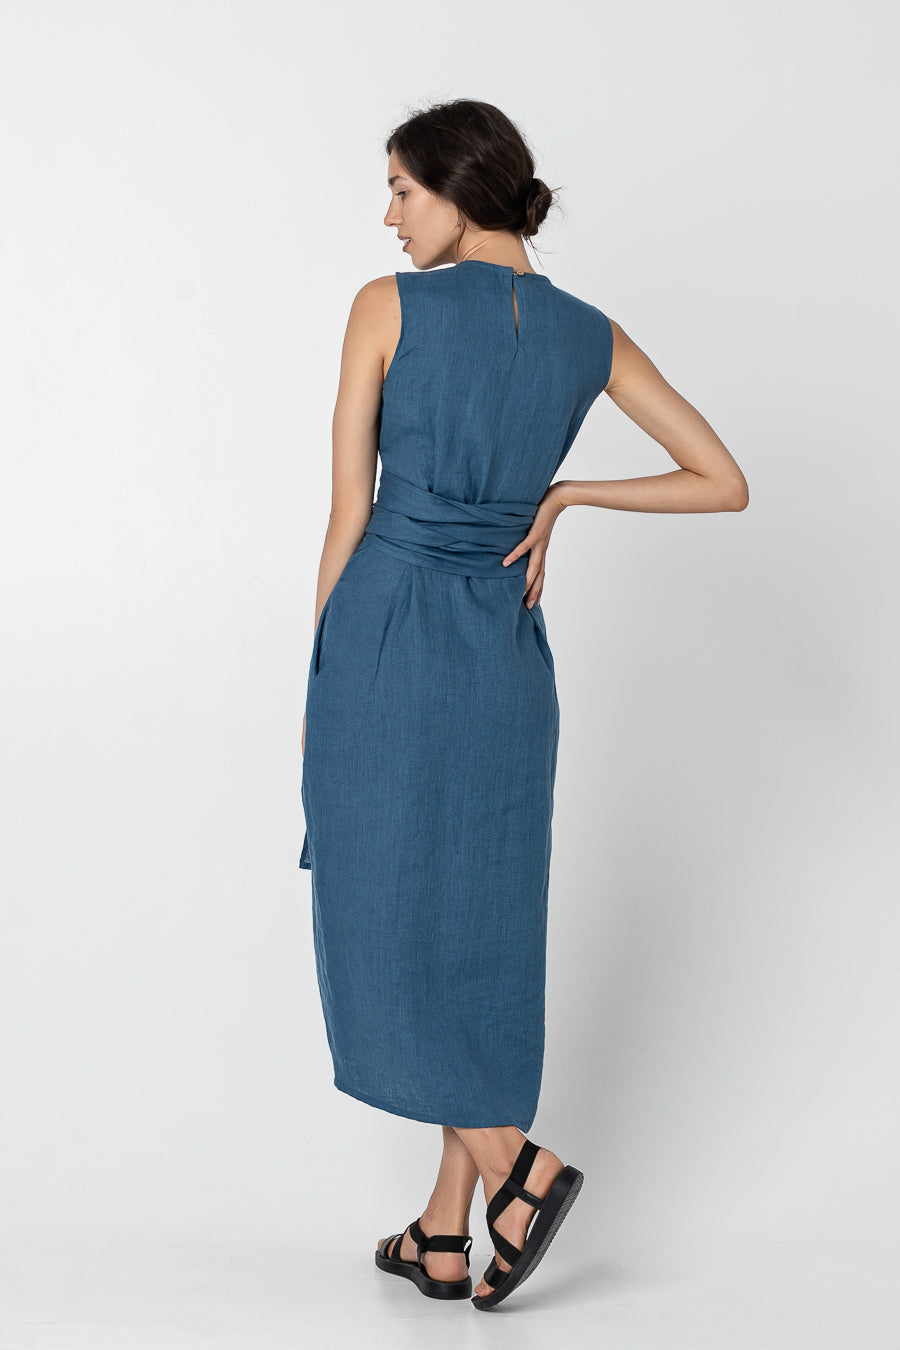 KIRA | Sleeveless linen dress